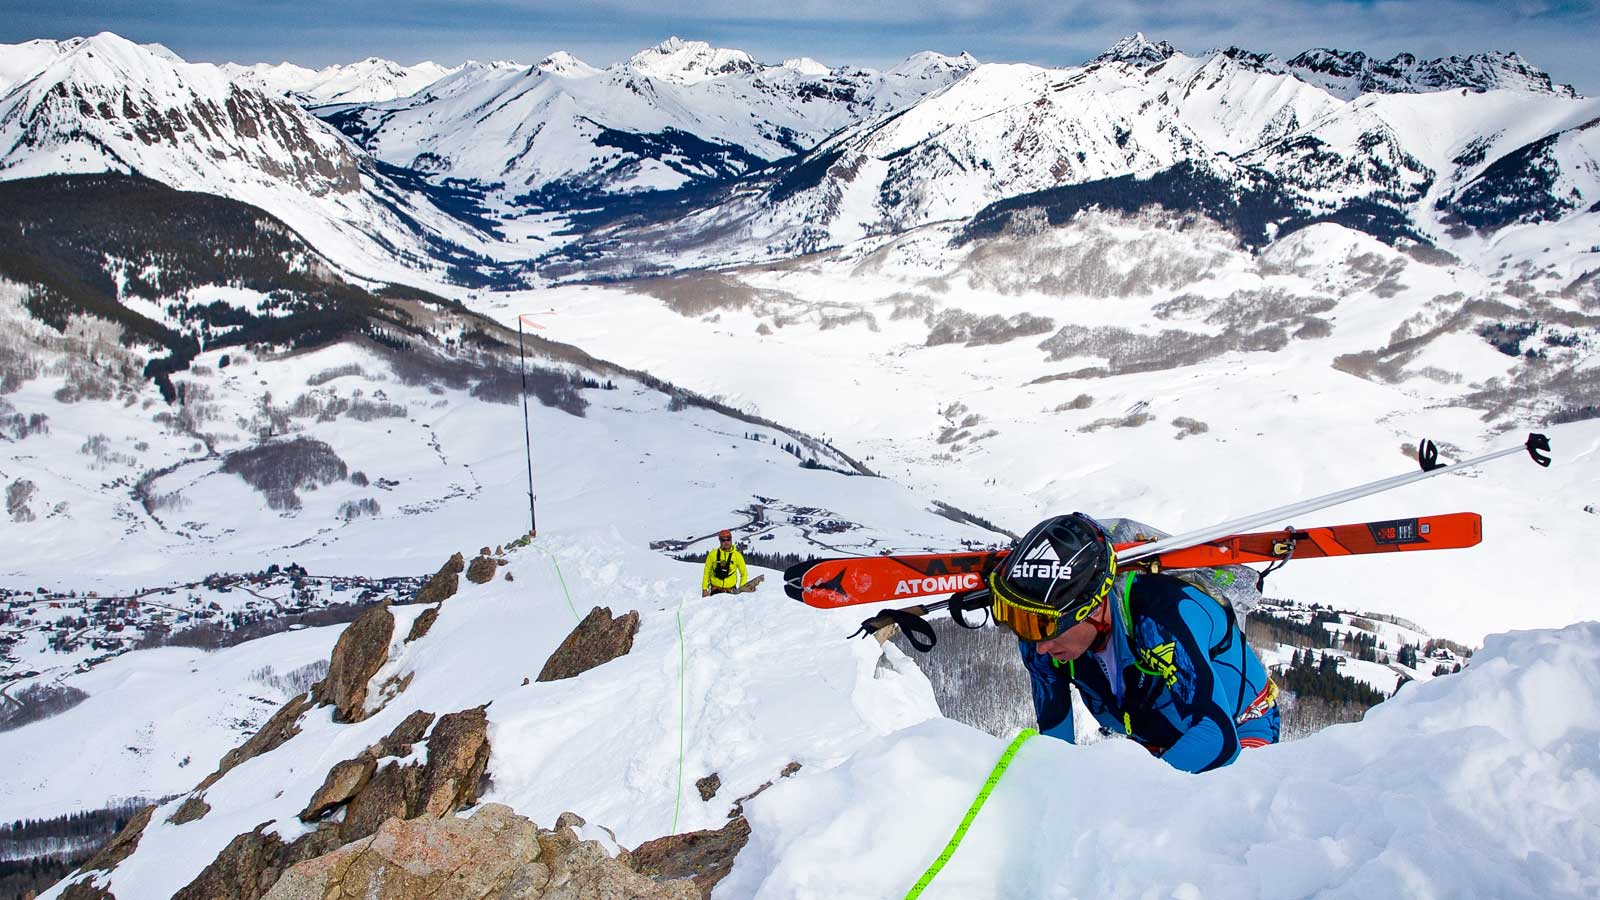 John Gaston at Crested Butte skimo race